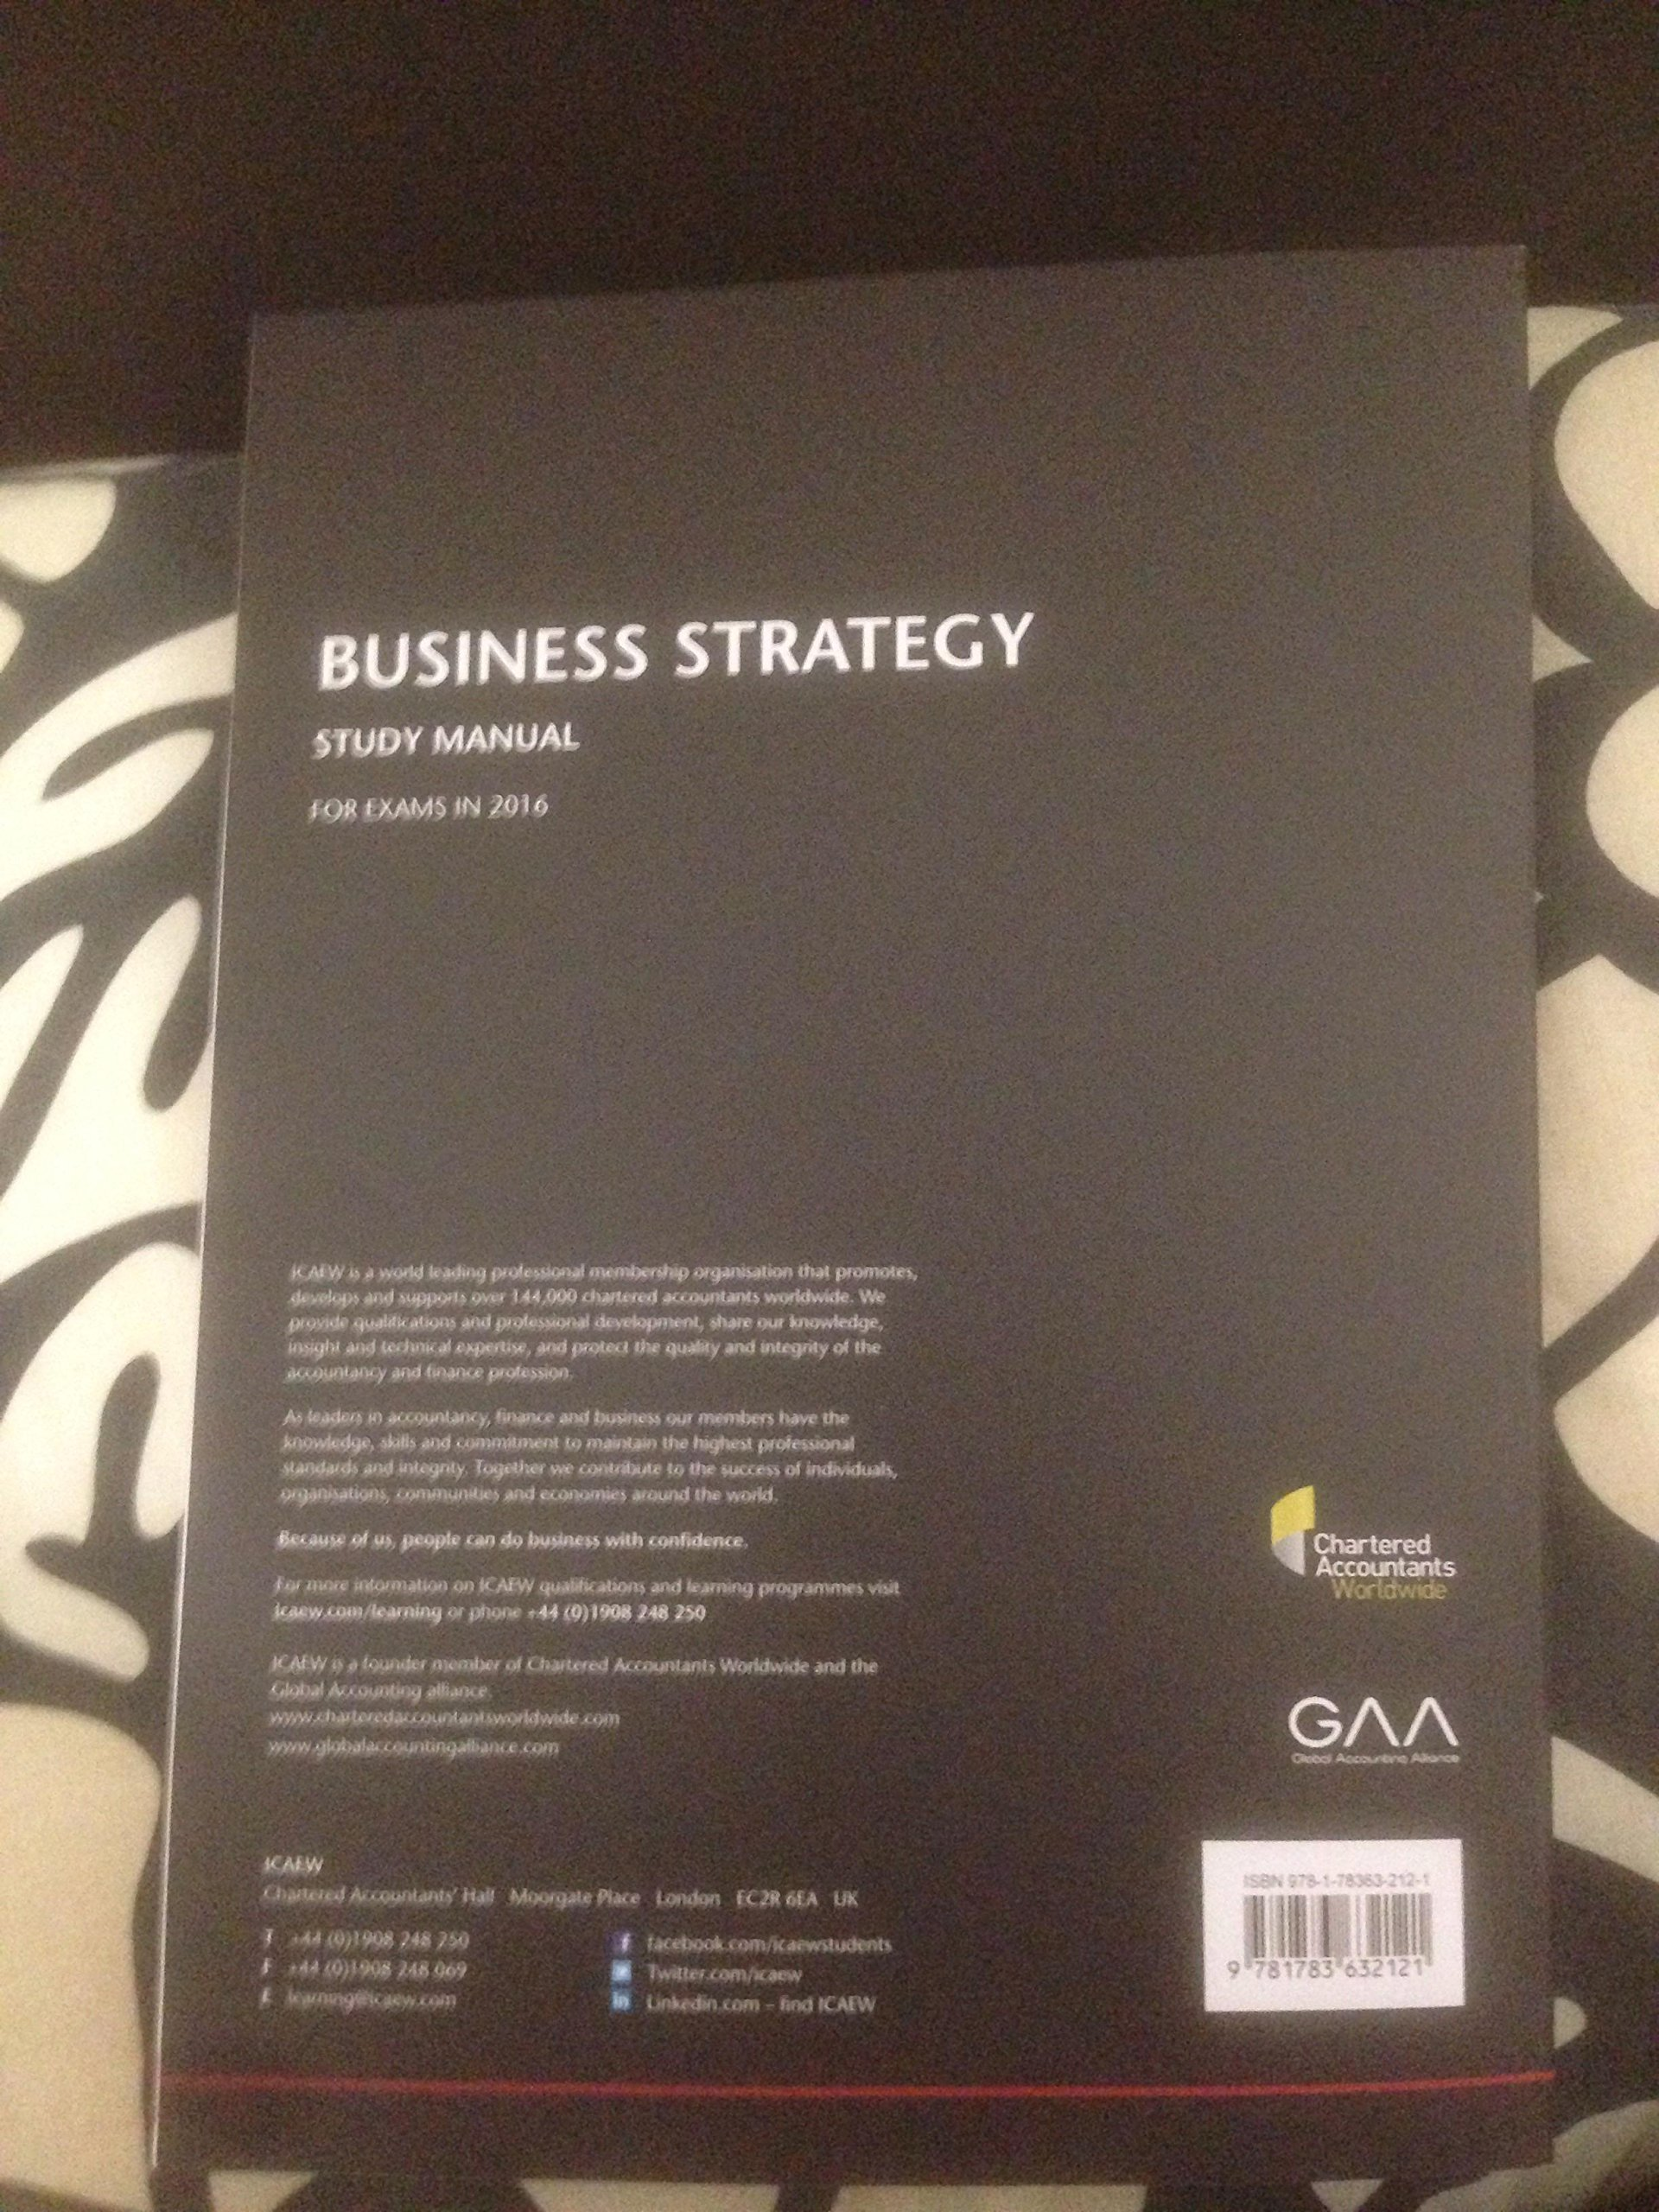 ICAEW Business Strategy study manual for exams in 2016: Amazon.co.uk: ICAEW:  9781783632121: Books